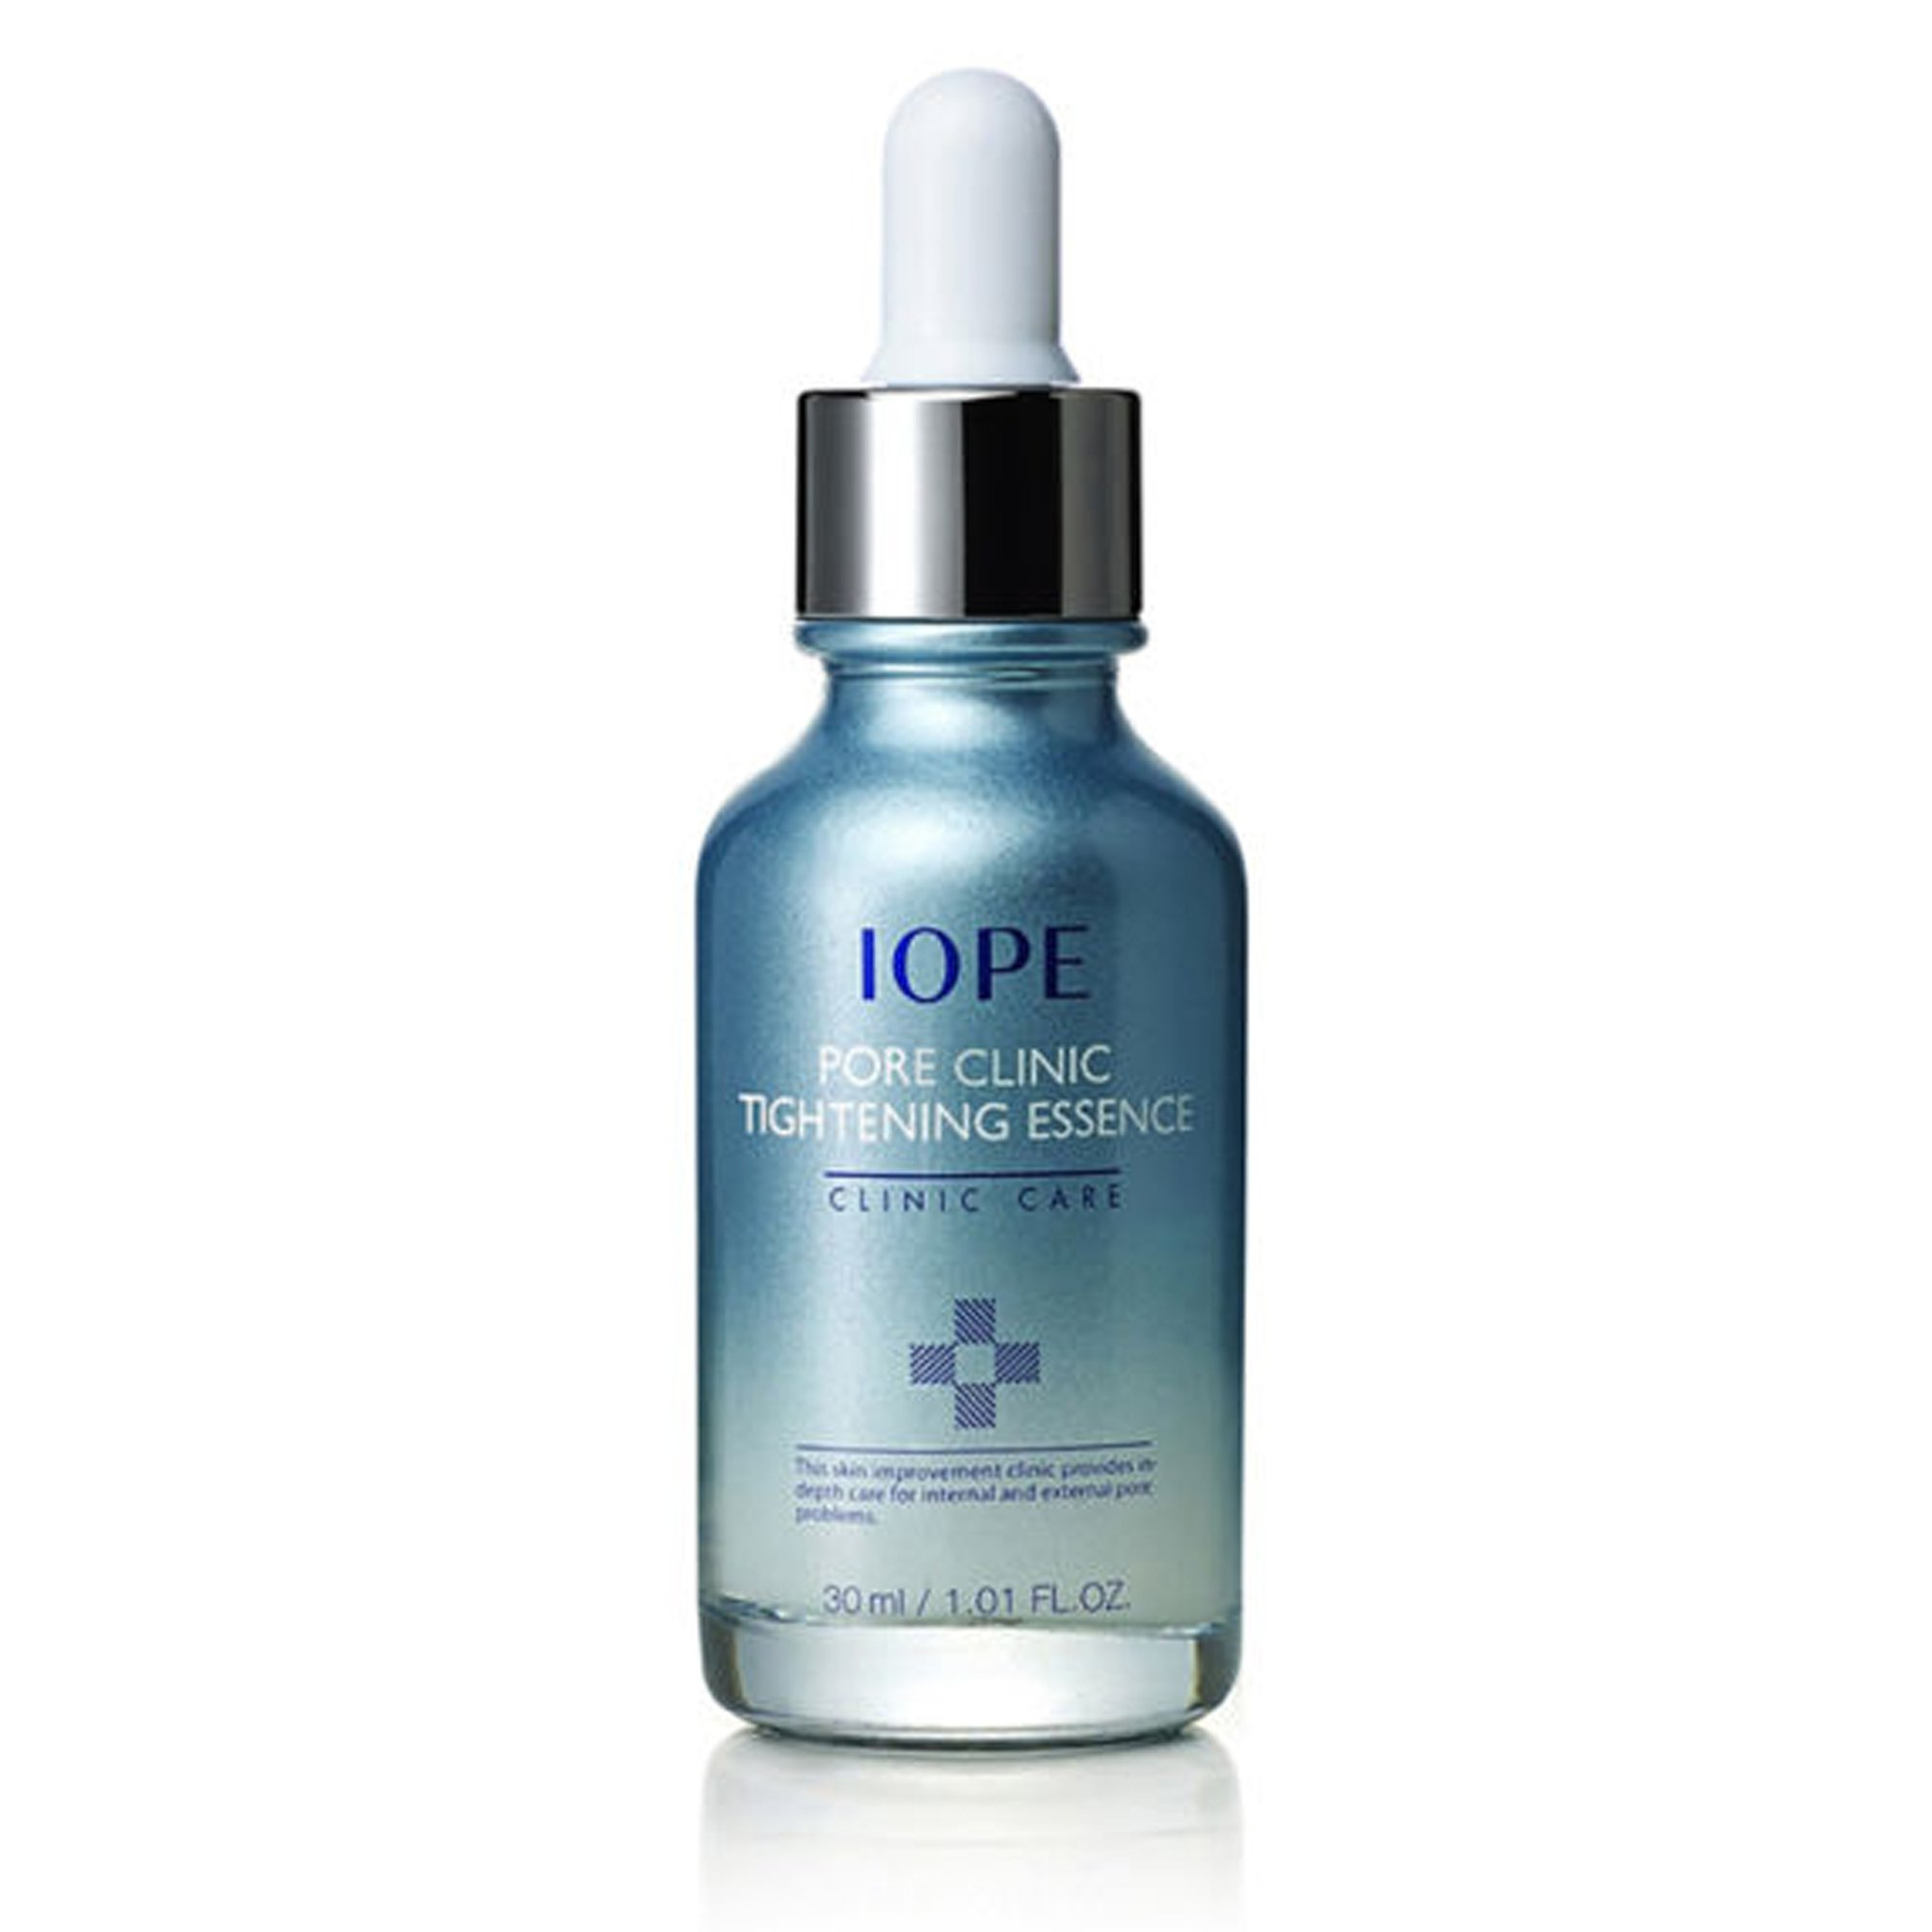 IOPE Pore Clinic Tightening Essence